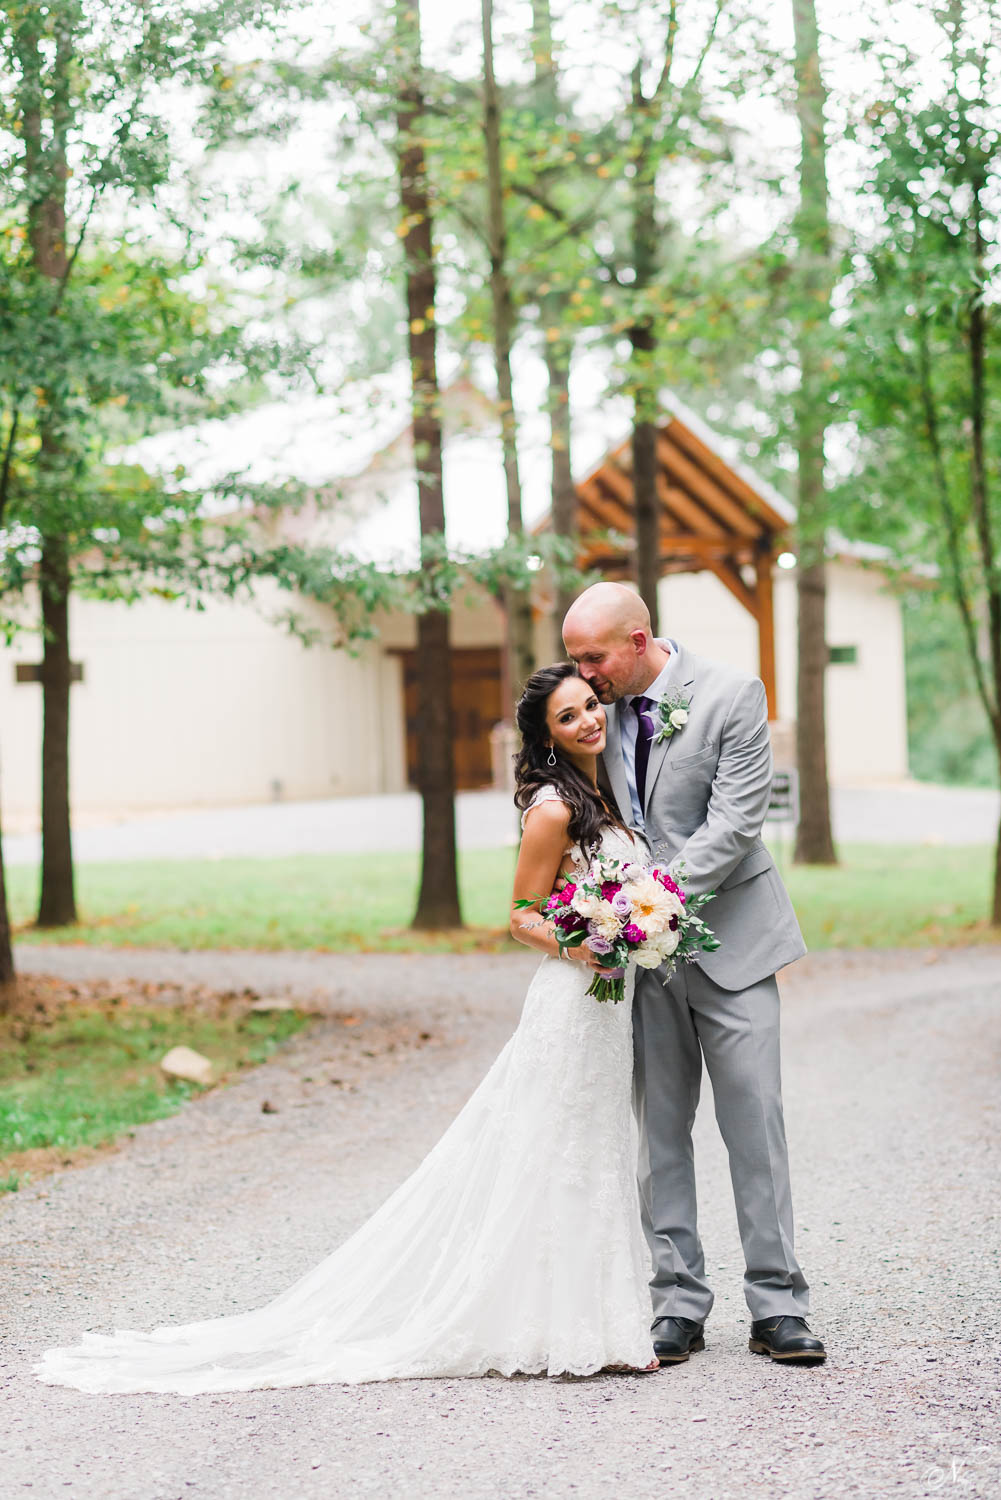 wedding photo of bride and groom in front of portico at Hiwassee River Weddings